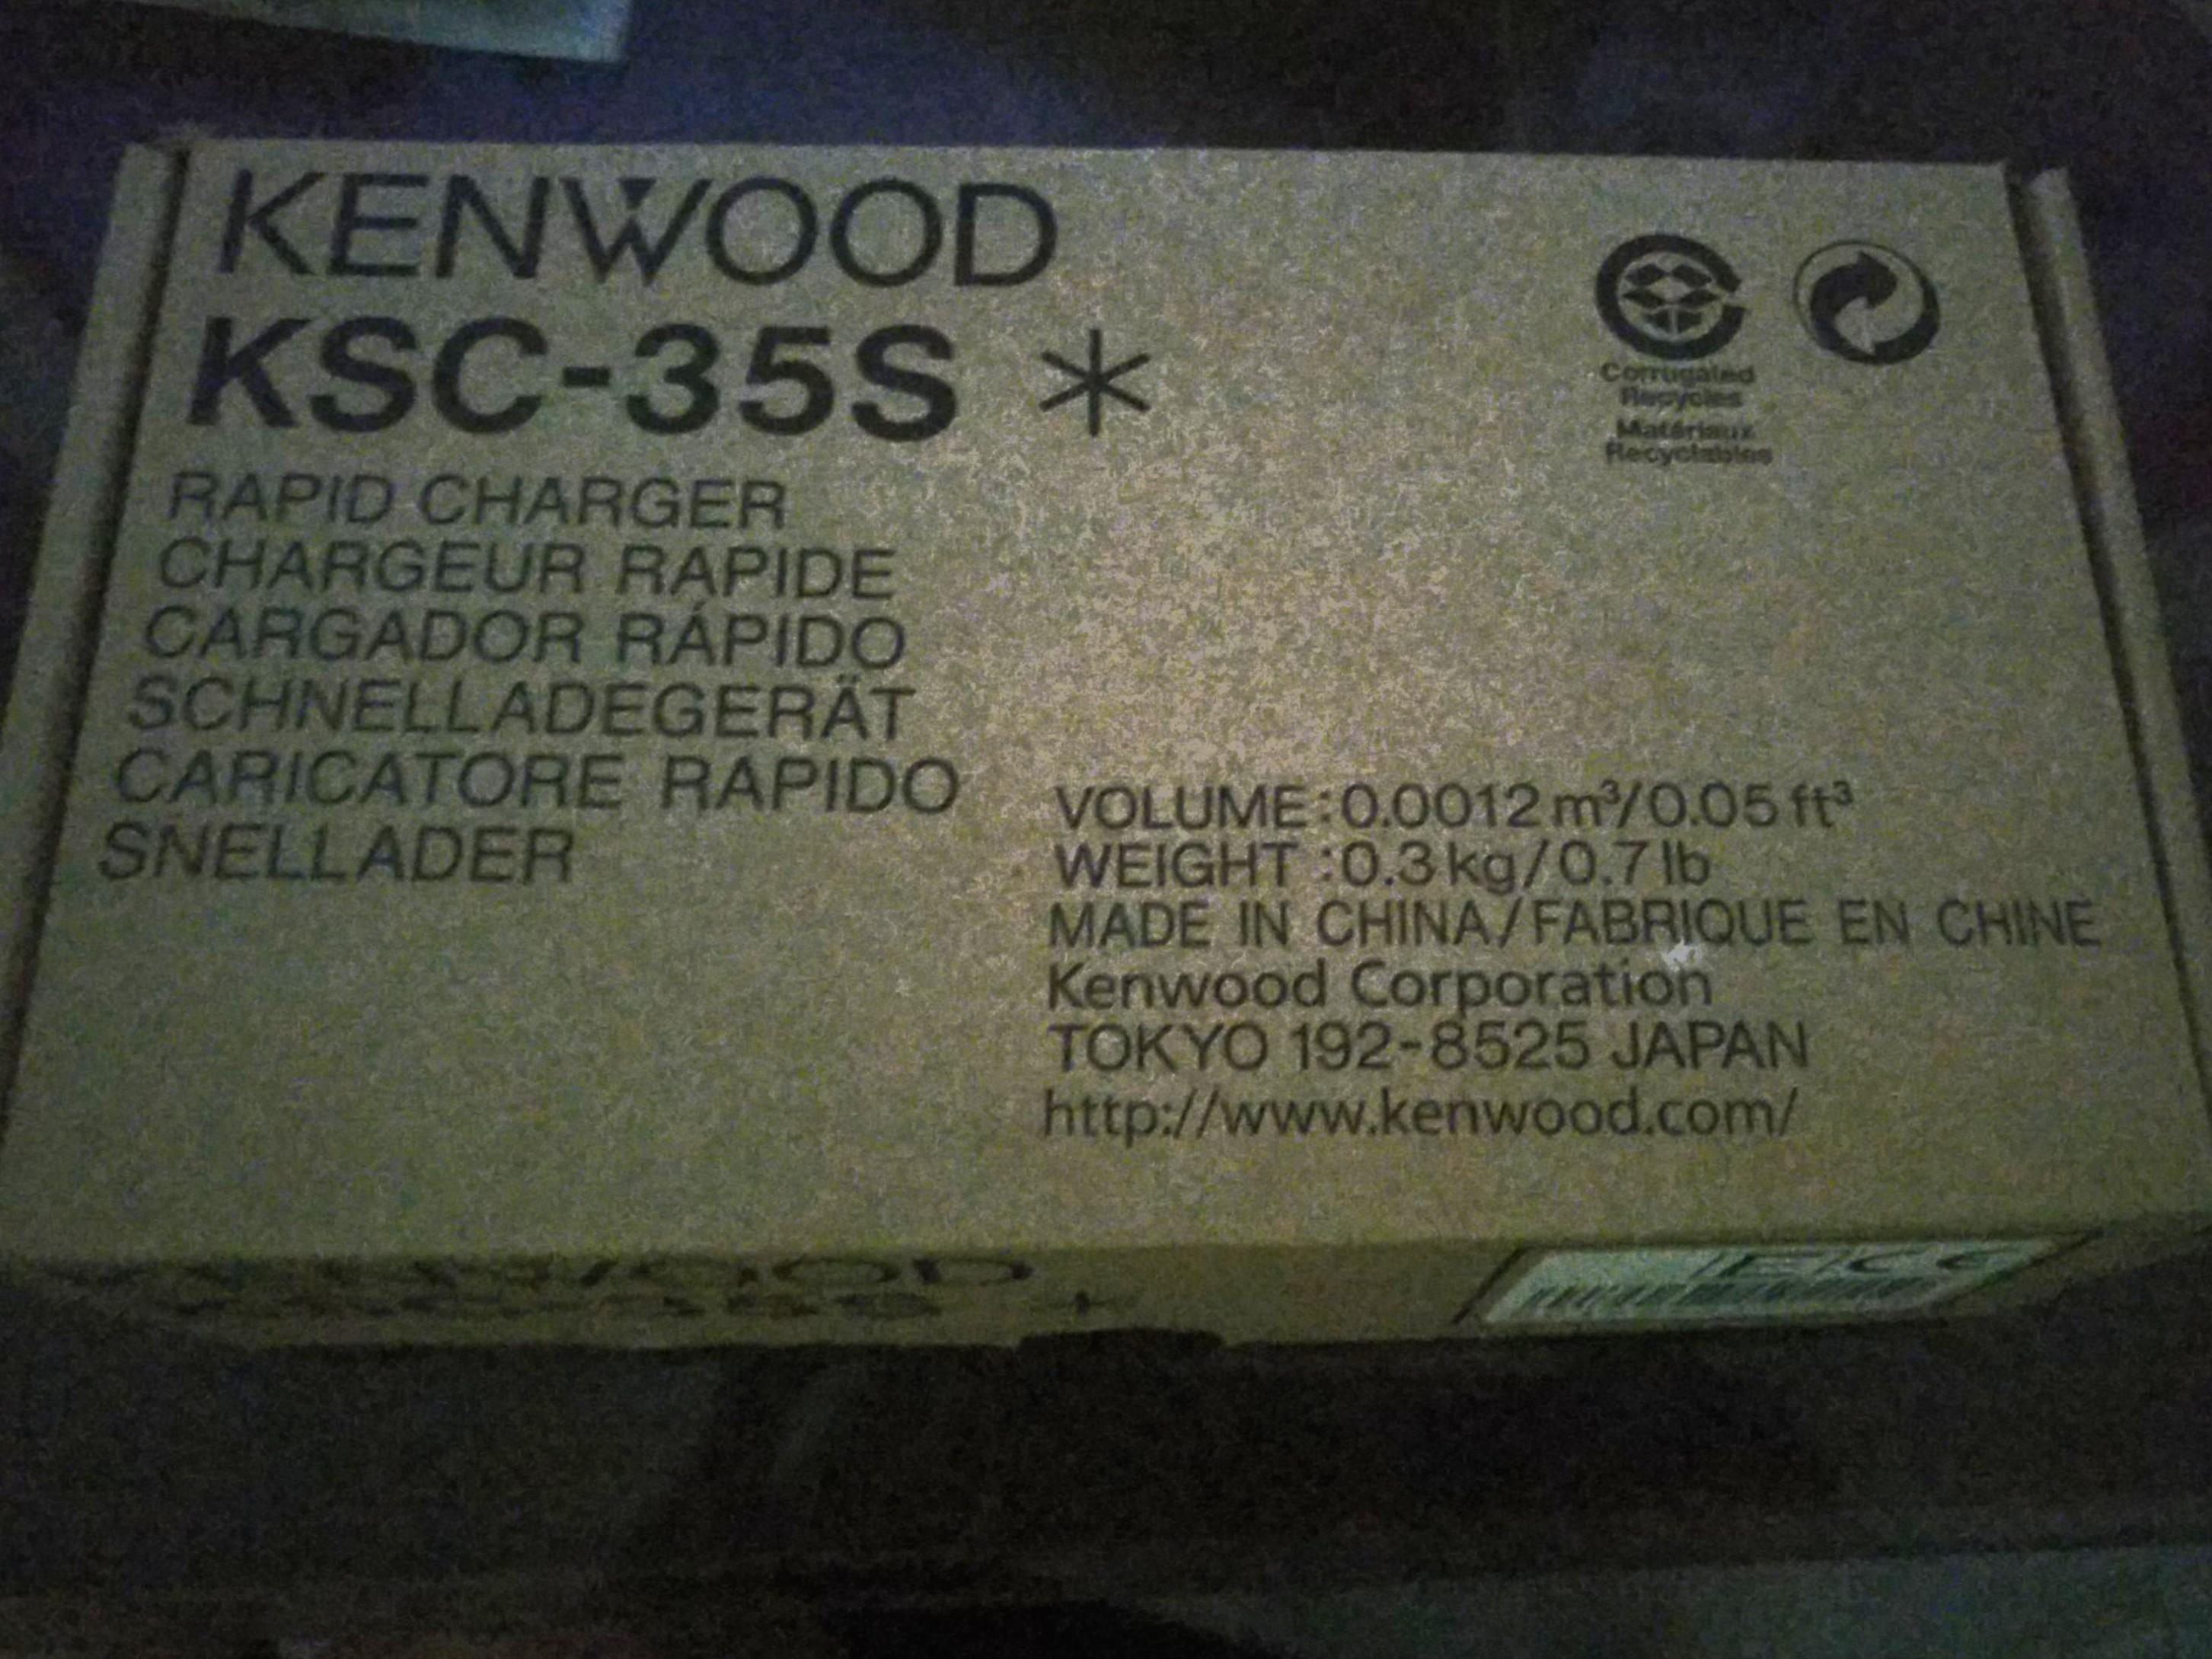 Kenwood Rapid Charger KSC-35S